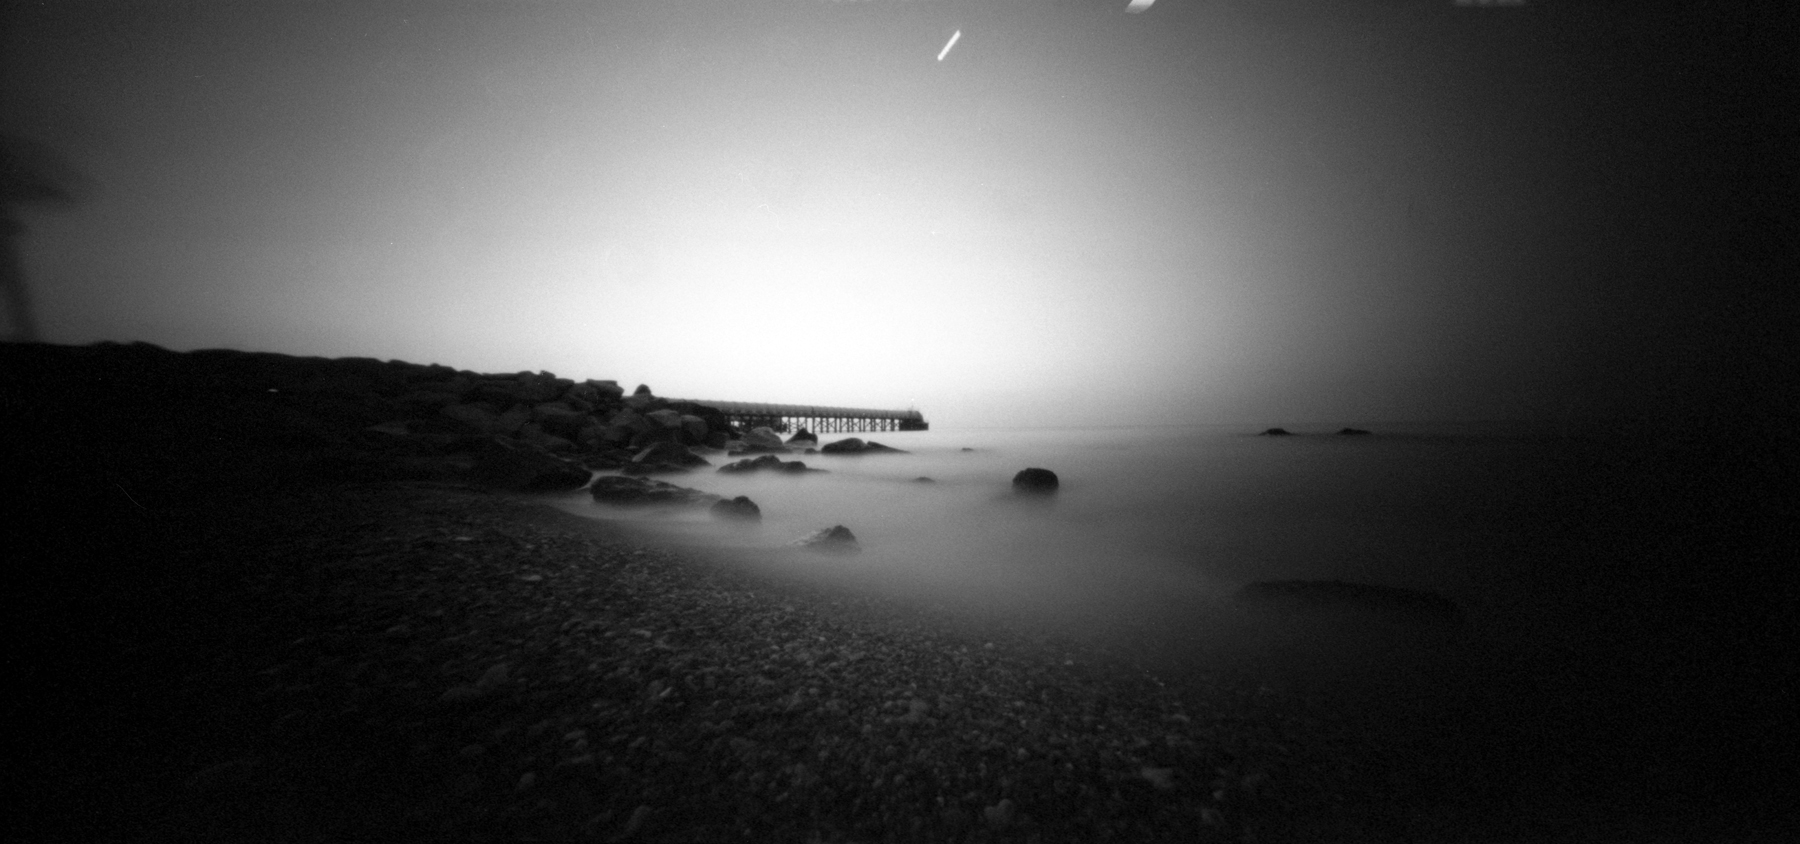 There are other worlds, but they are in this one | 6x12 Pinhole Camera | Jesús Joglar